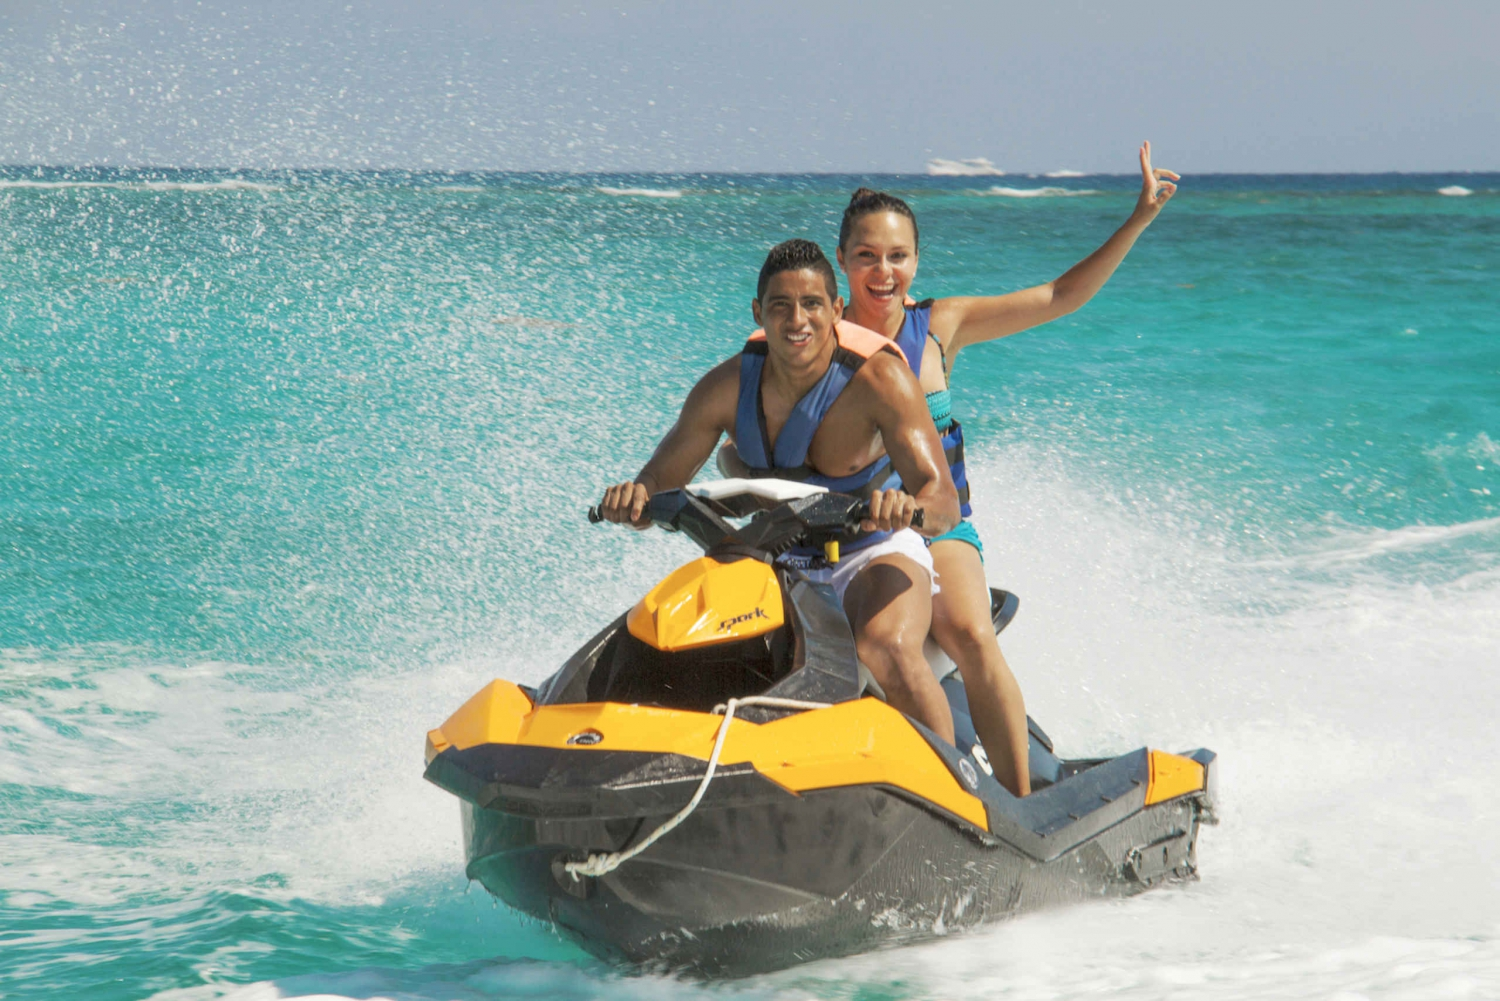 Caribbean Sea Waverunner Adventure